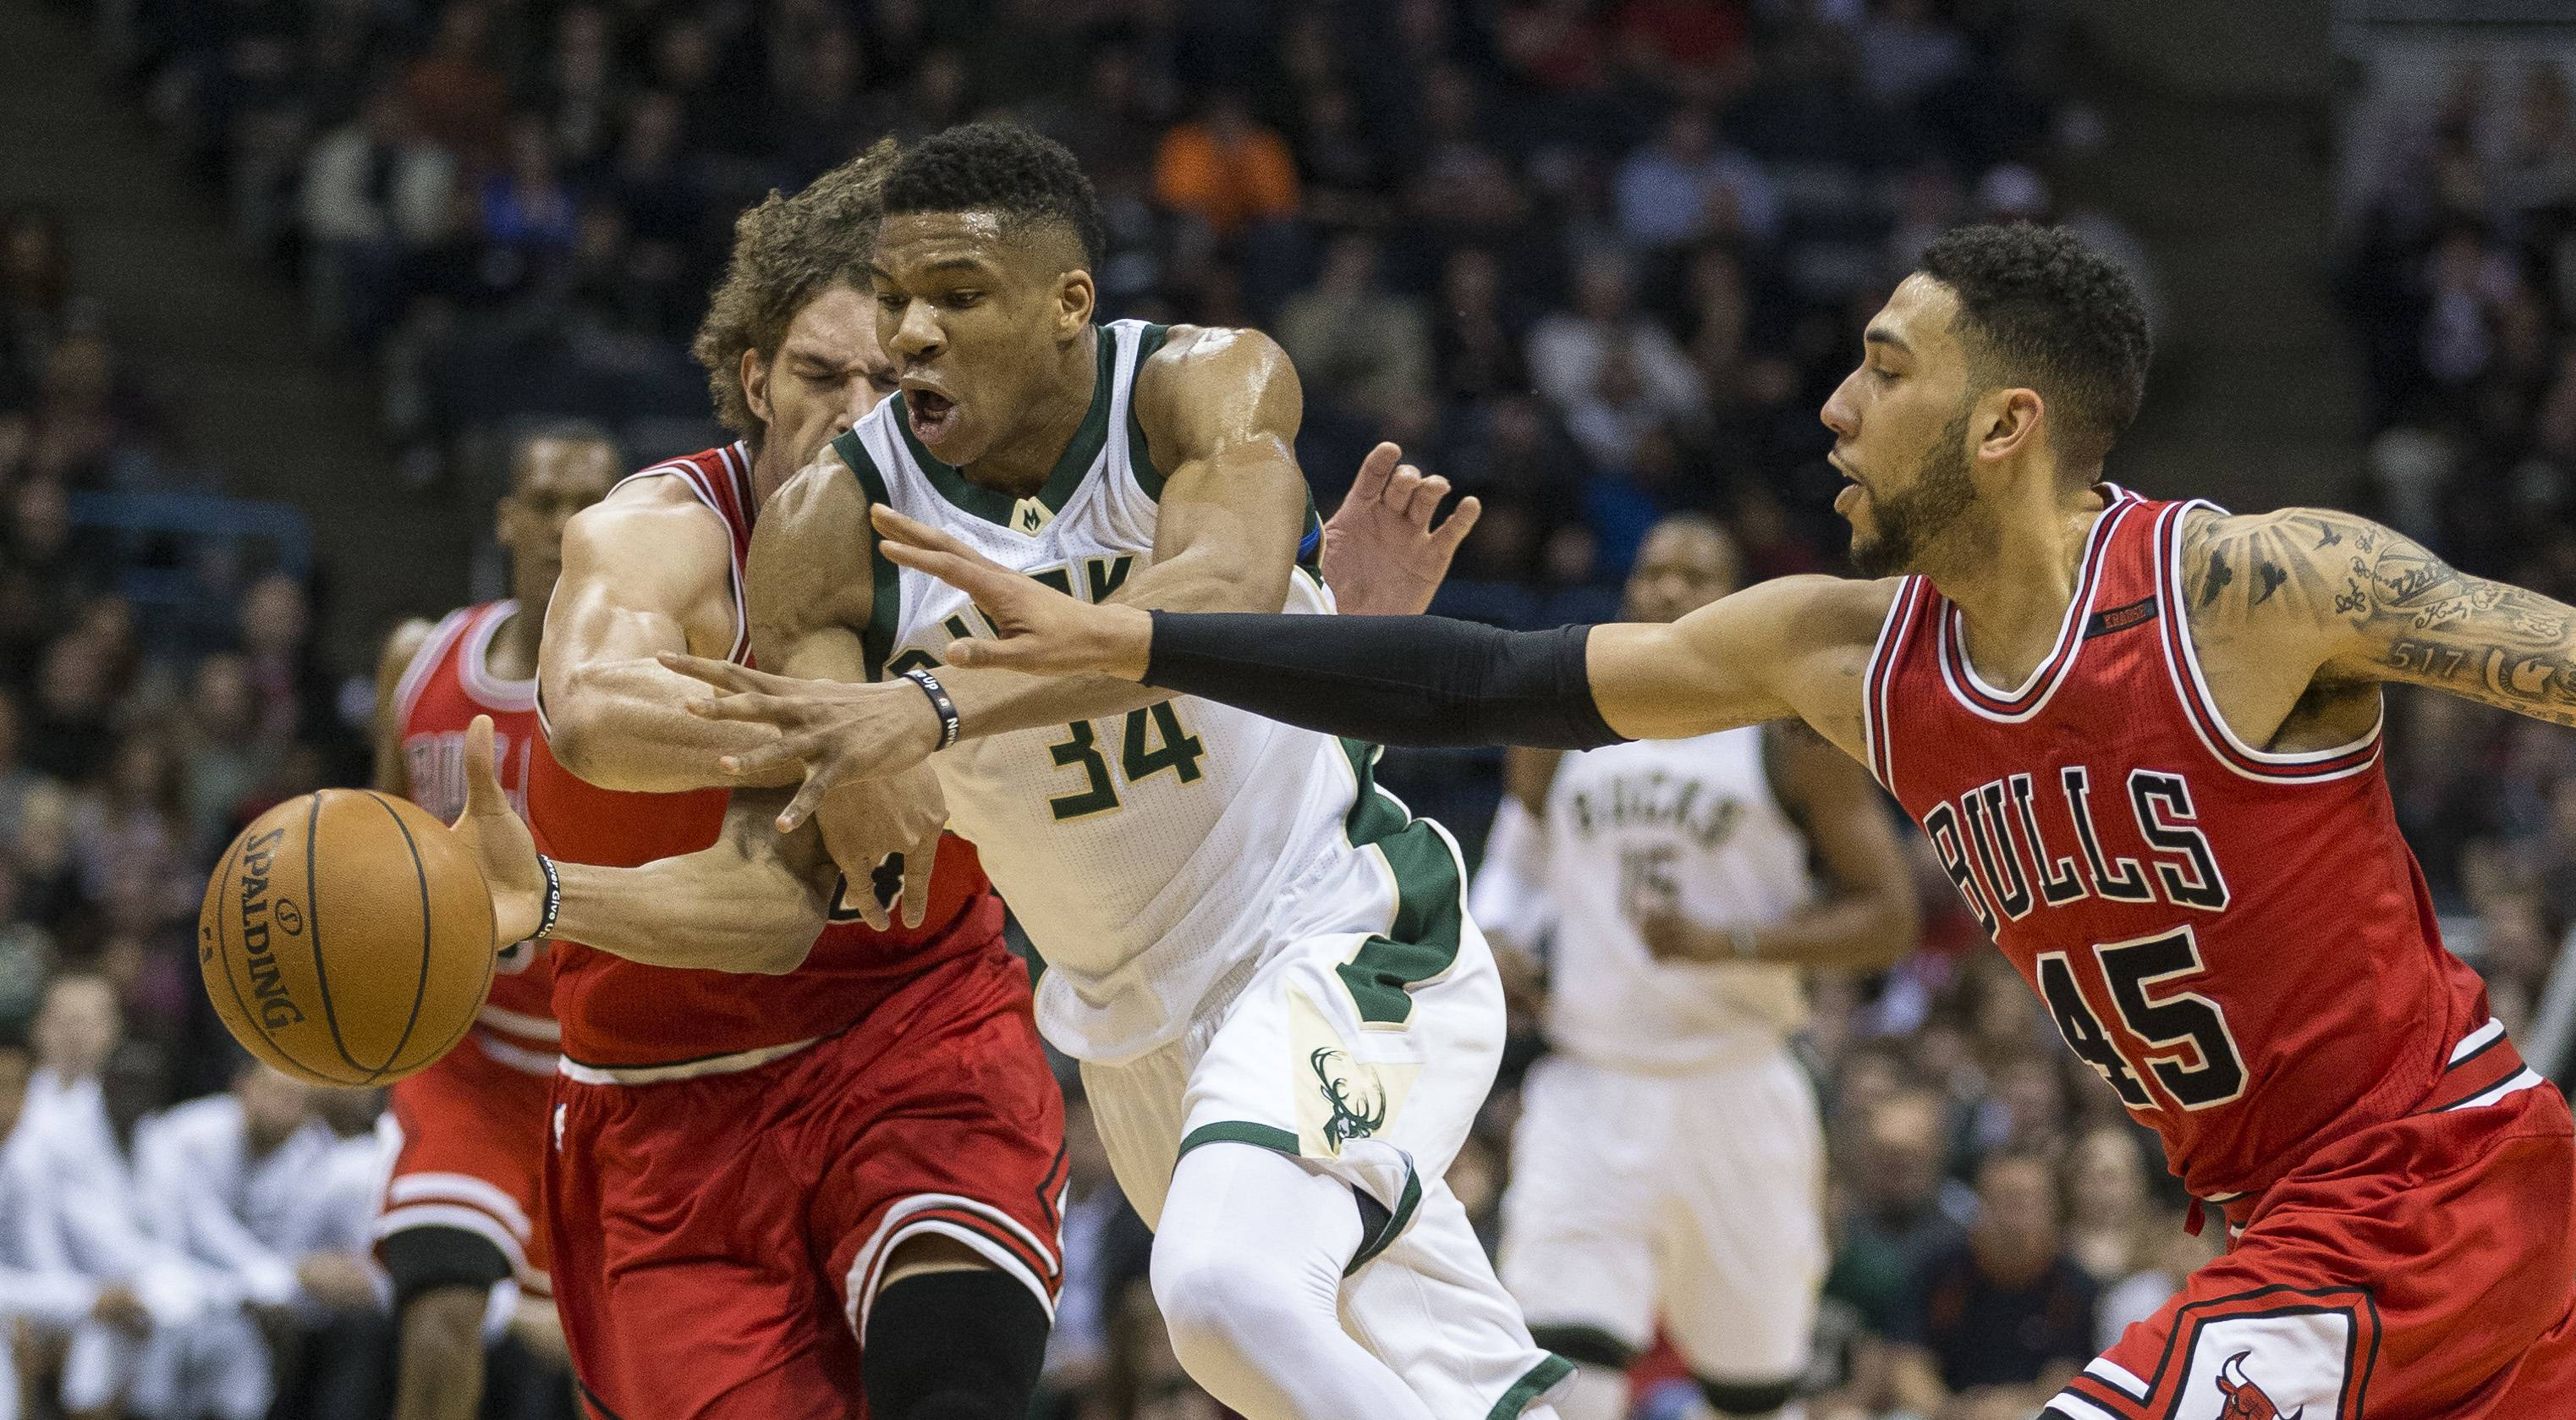 The Bulls' playoff lives depend on keeping Cleveland on the skids Thursday at the United Center. The Bulls have won six of their last seven against the Cavs, along with 19 straight home games televised by TNT.